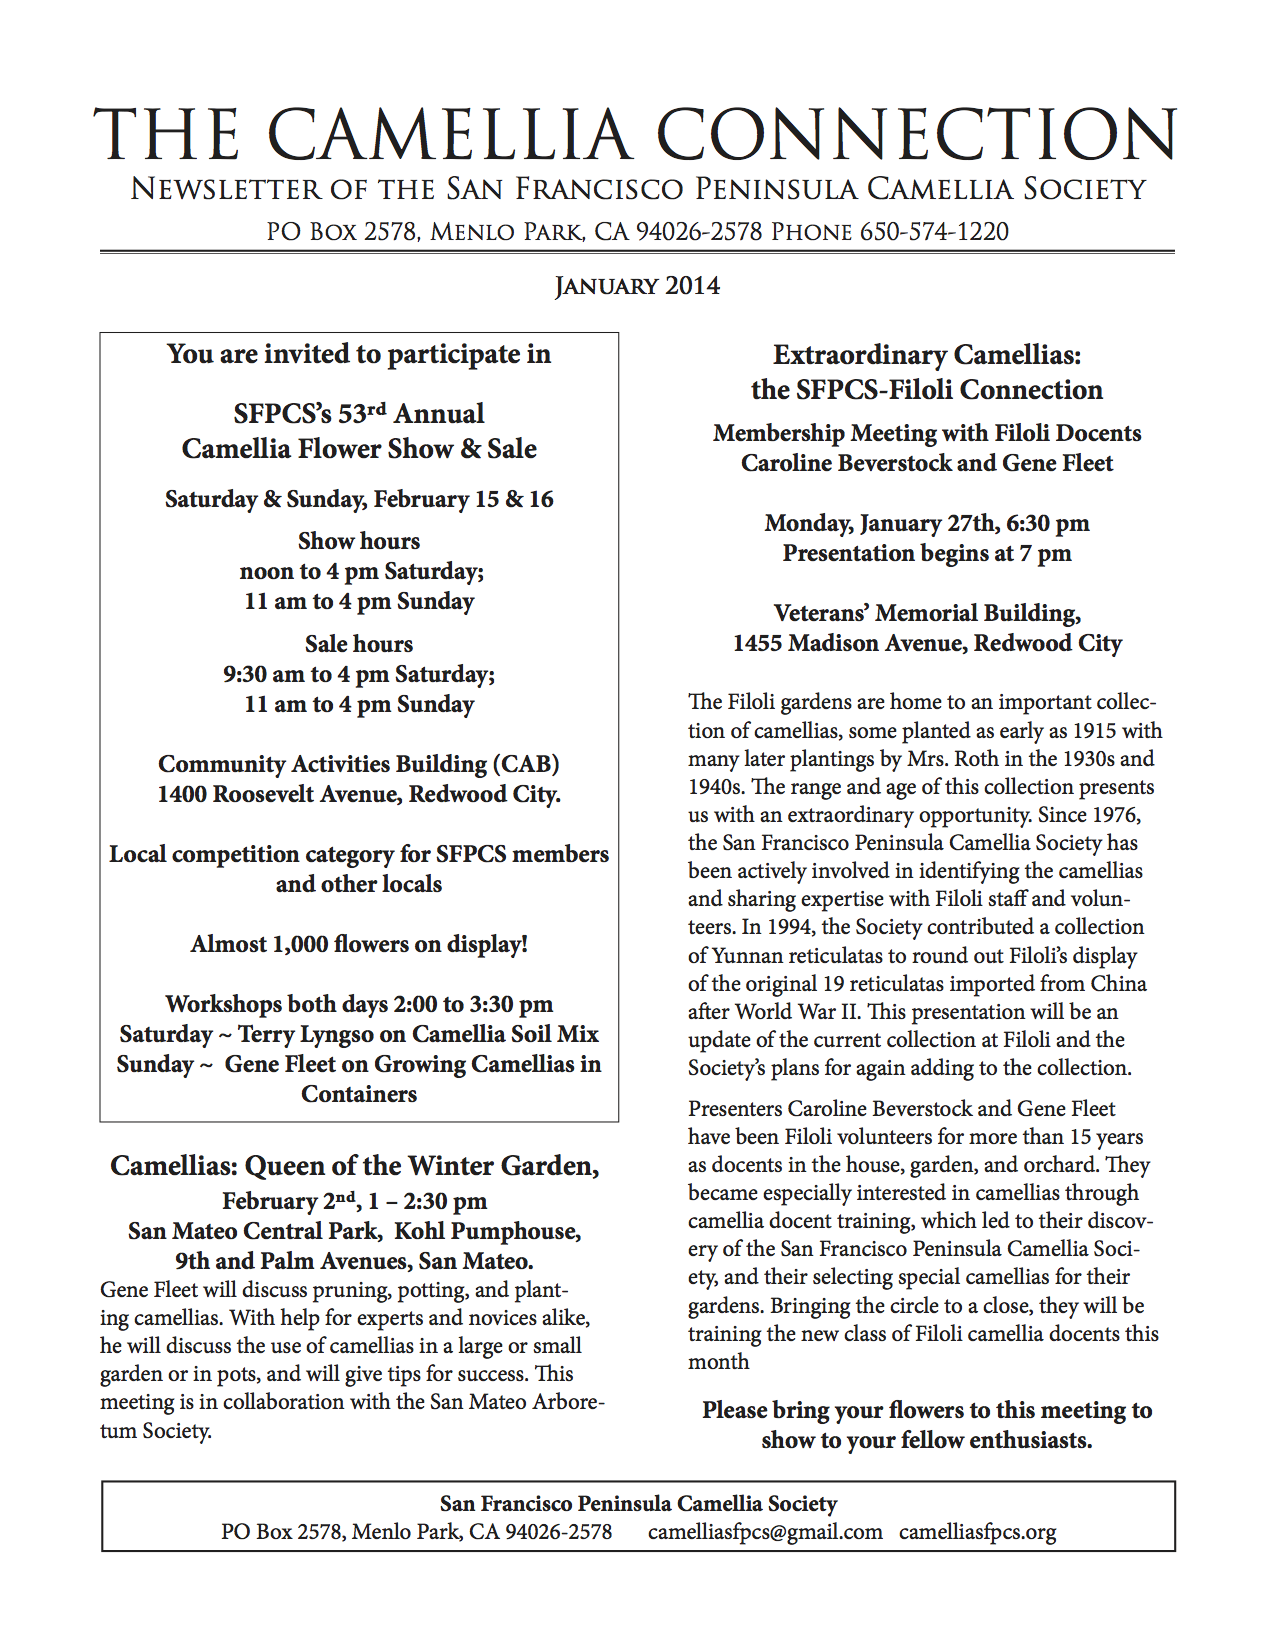 January 2014 newsletter p1